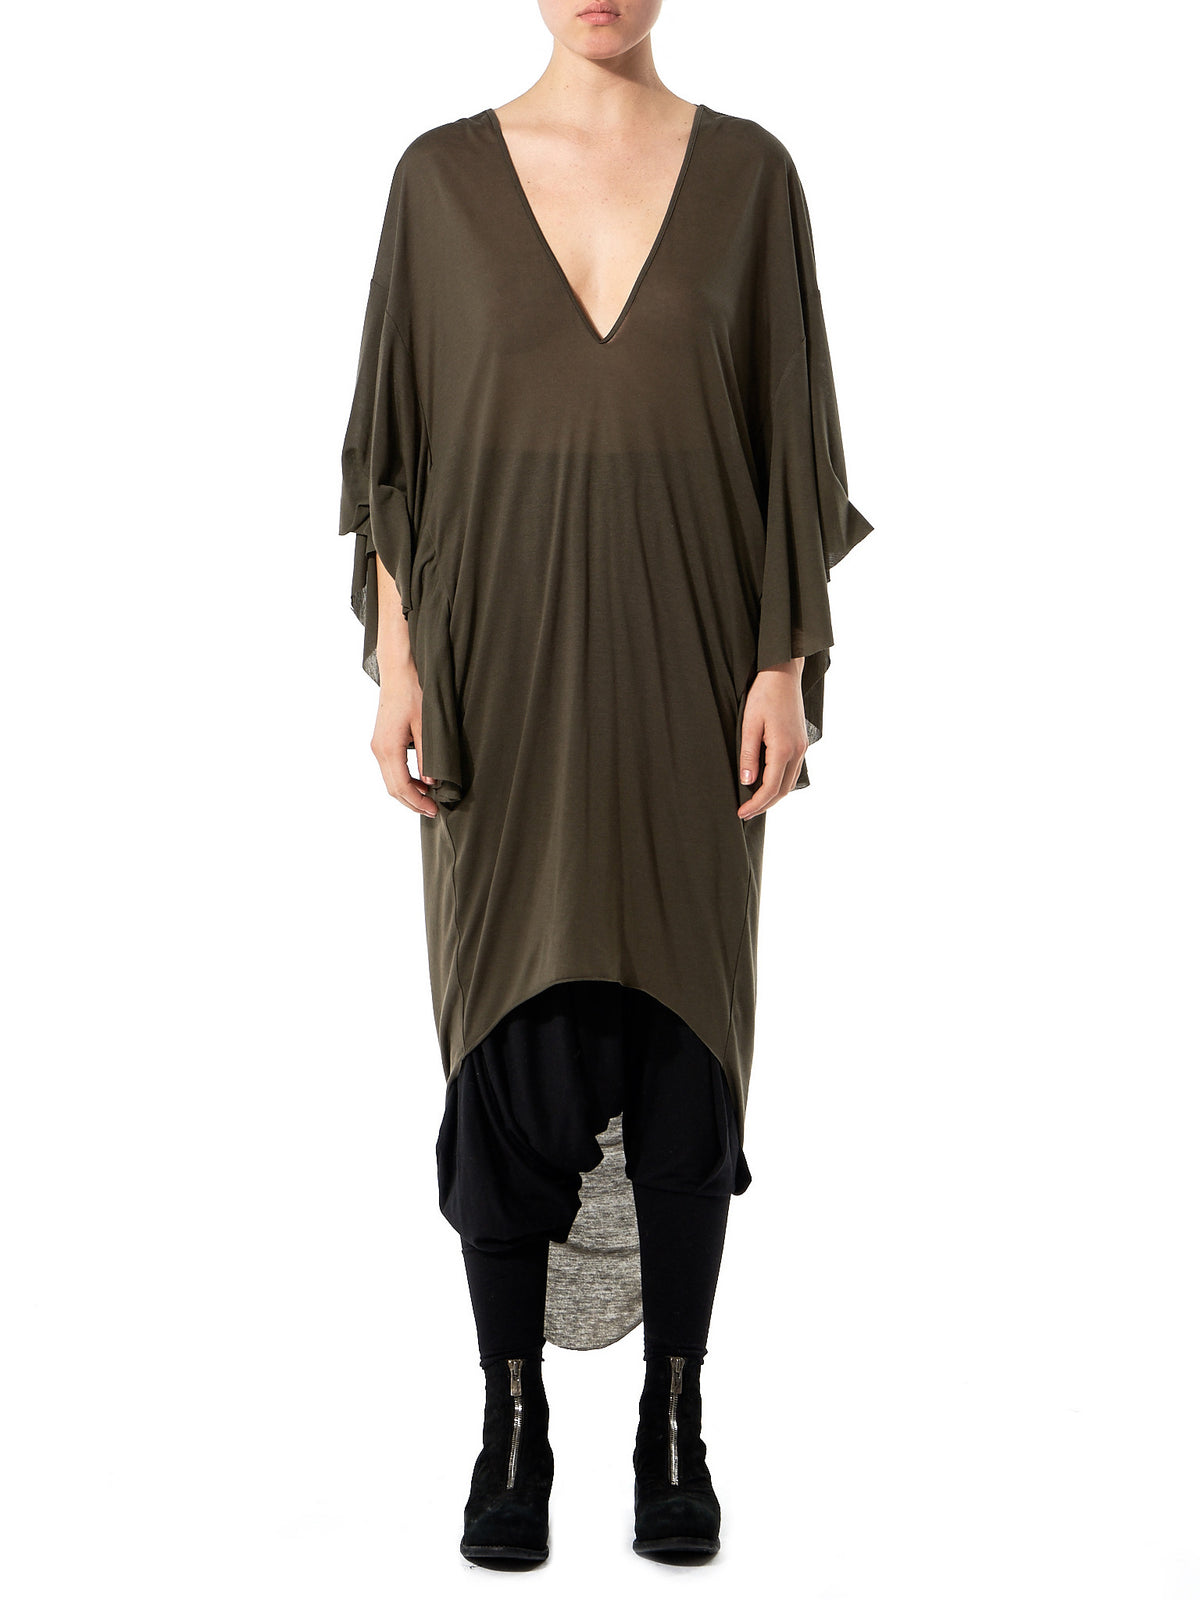 Draped 'Jersey' Dress (GLS-JD03-KHAKI) - H. Lorenzo